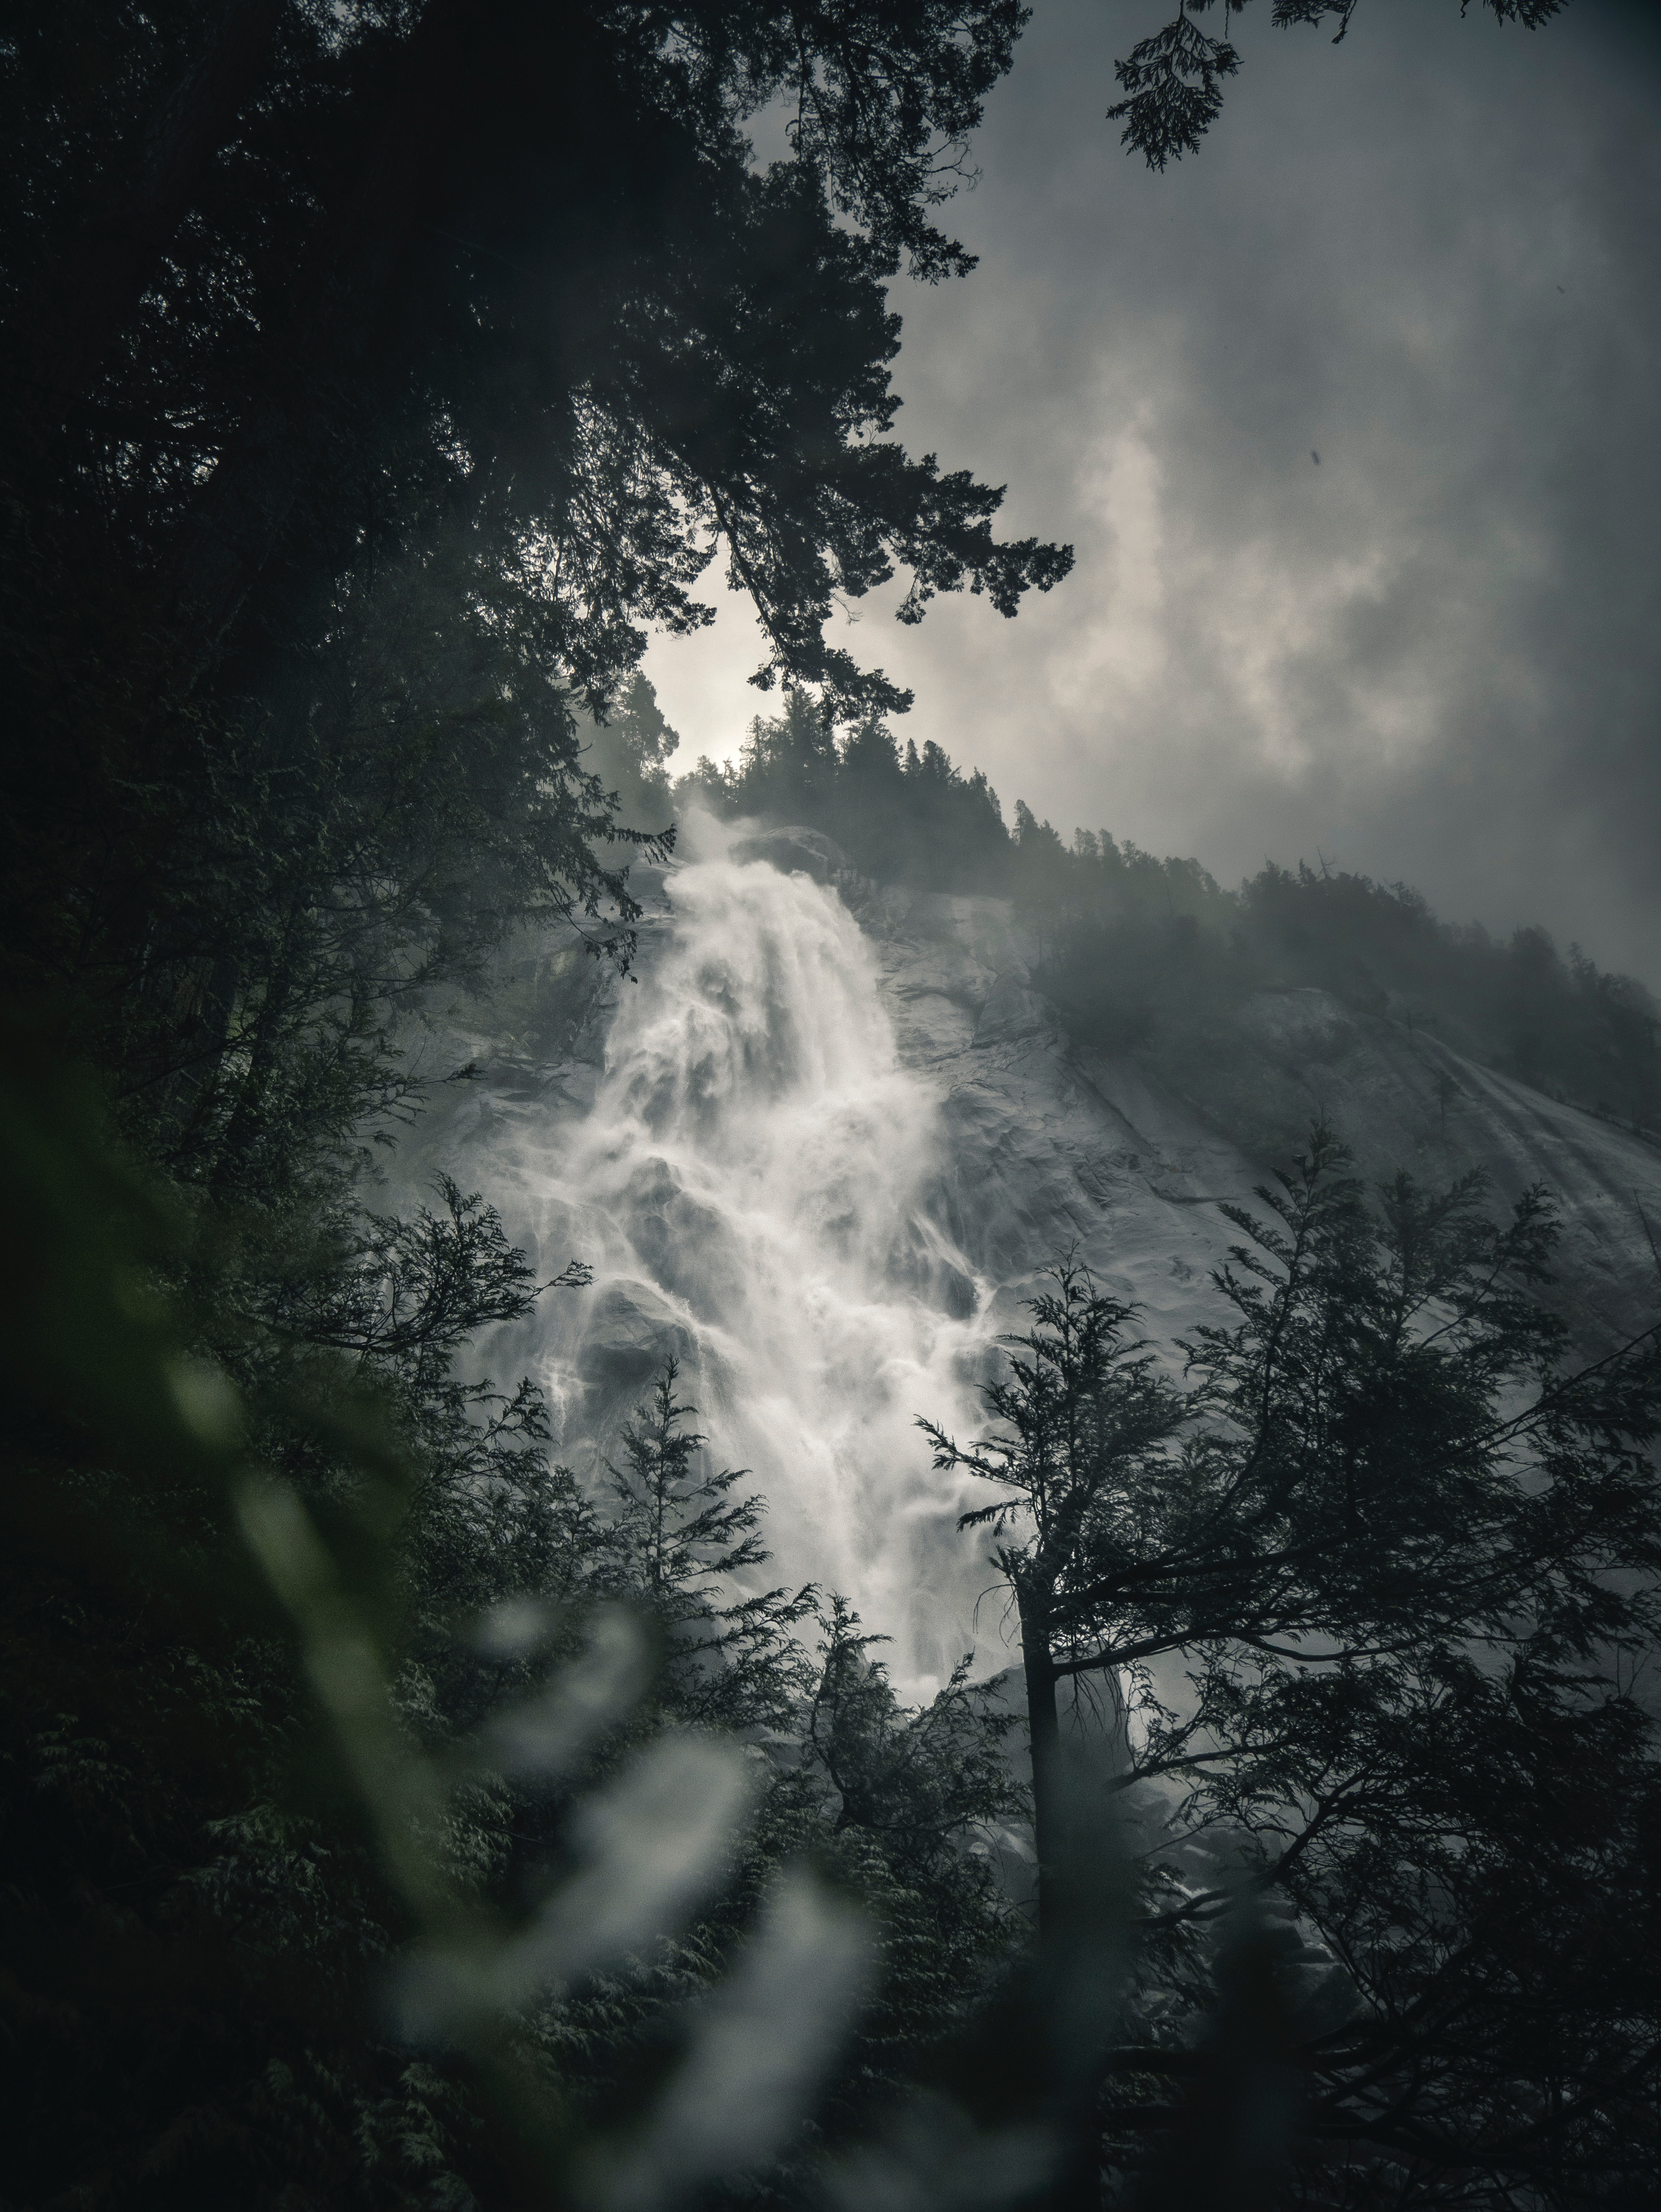 146112 download wallpaper Nature, Waterfall, Fog, Branches, Flow, Break, Precipice, Rock screensavers and pictures for free